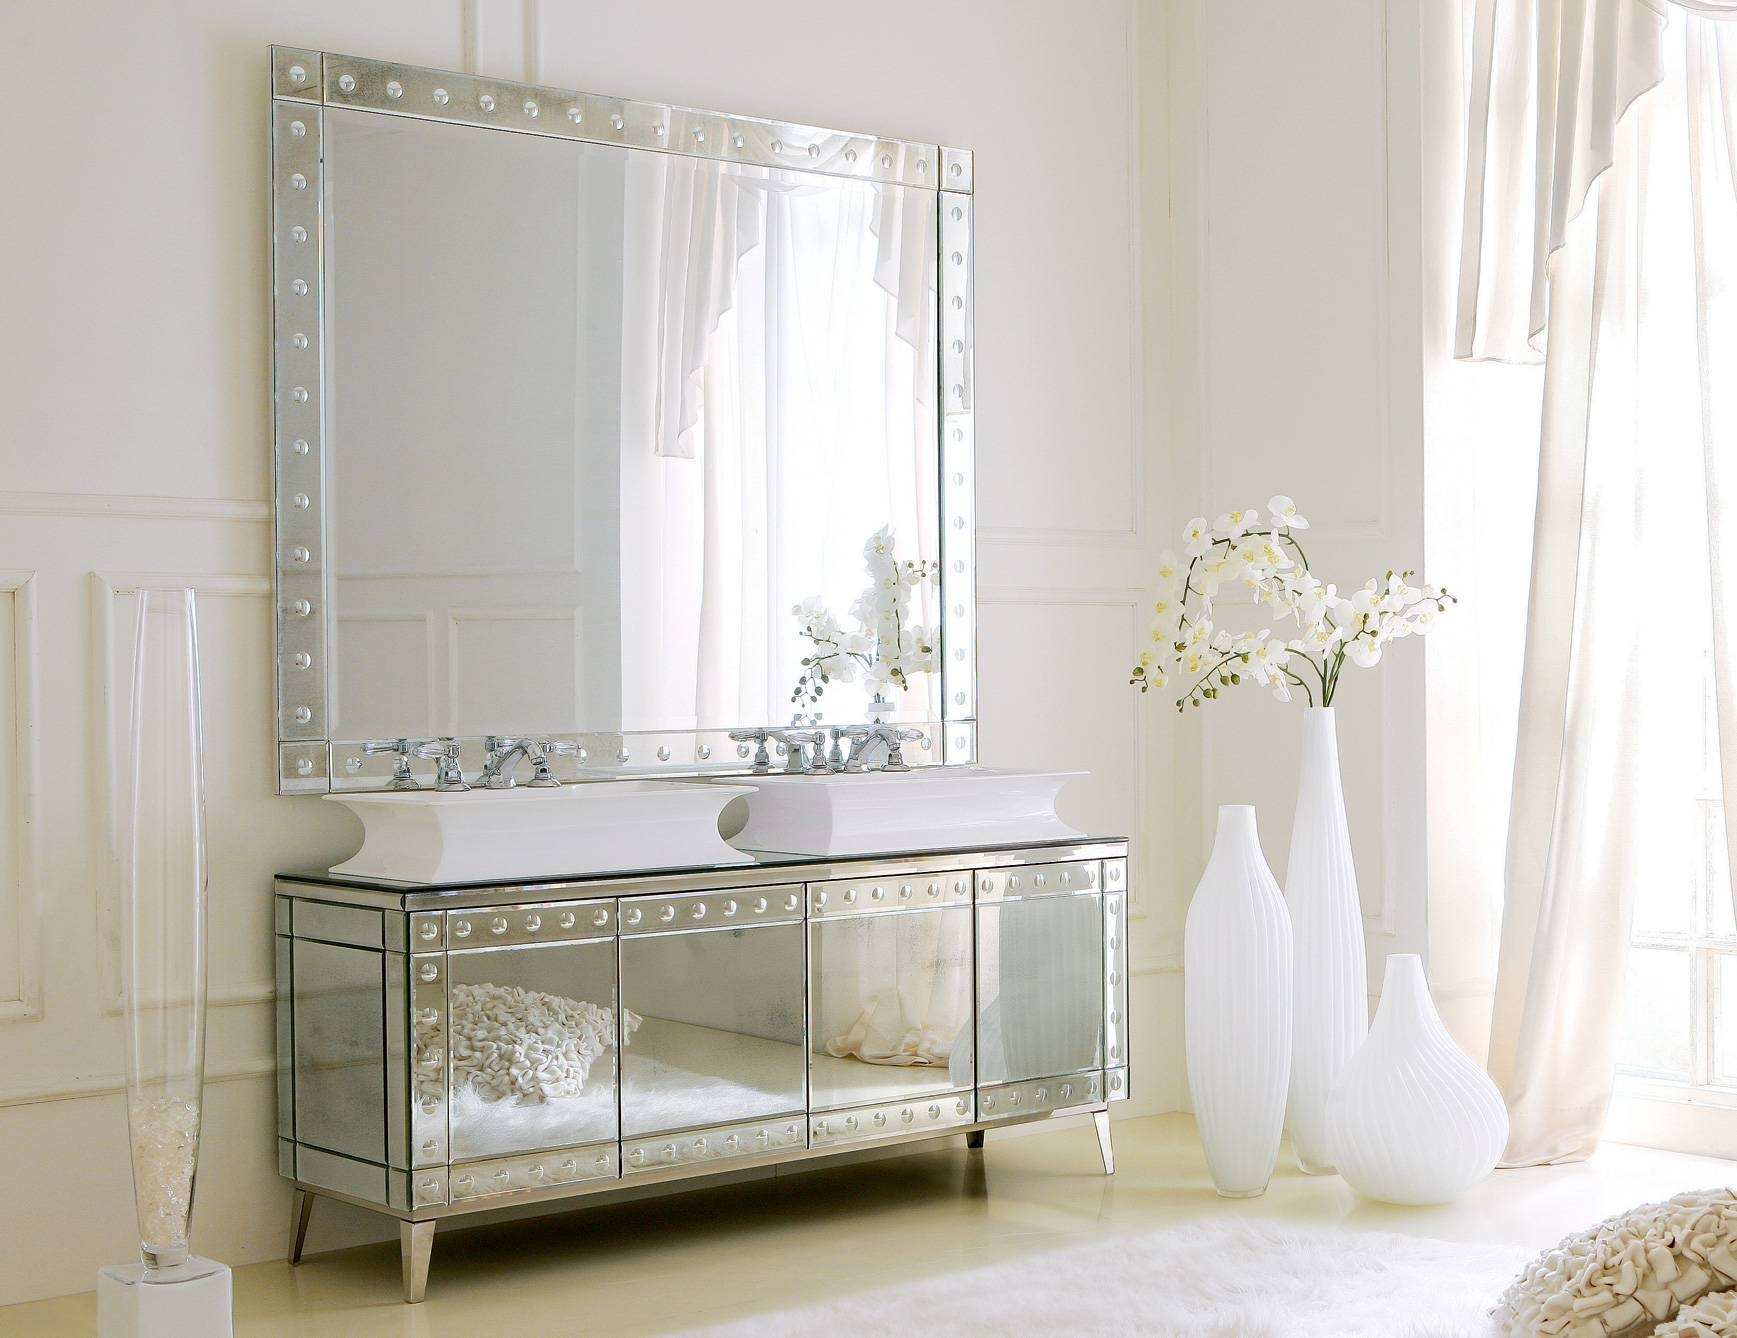 Hermitage H1 High End Italian Bathroom Vanity In Venetian Mirror intended for Venetian Sideboard Mirrors (Image 9 of 25)